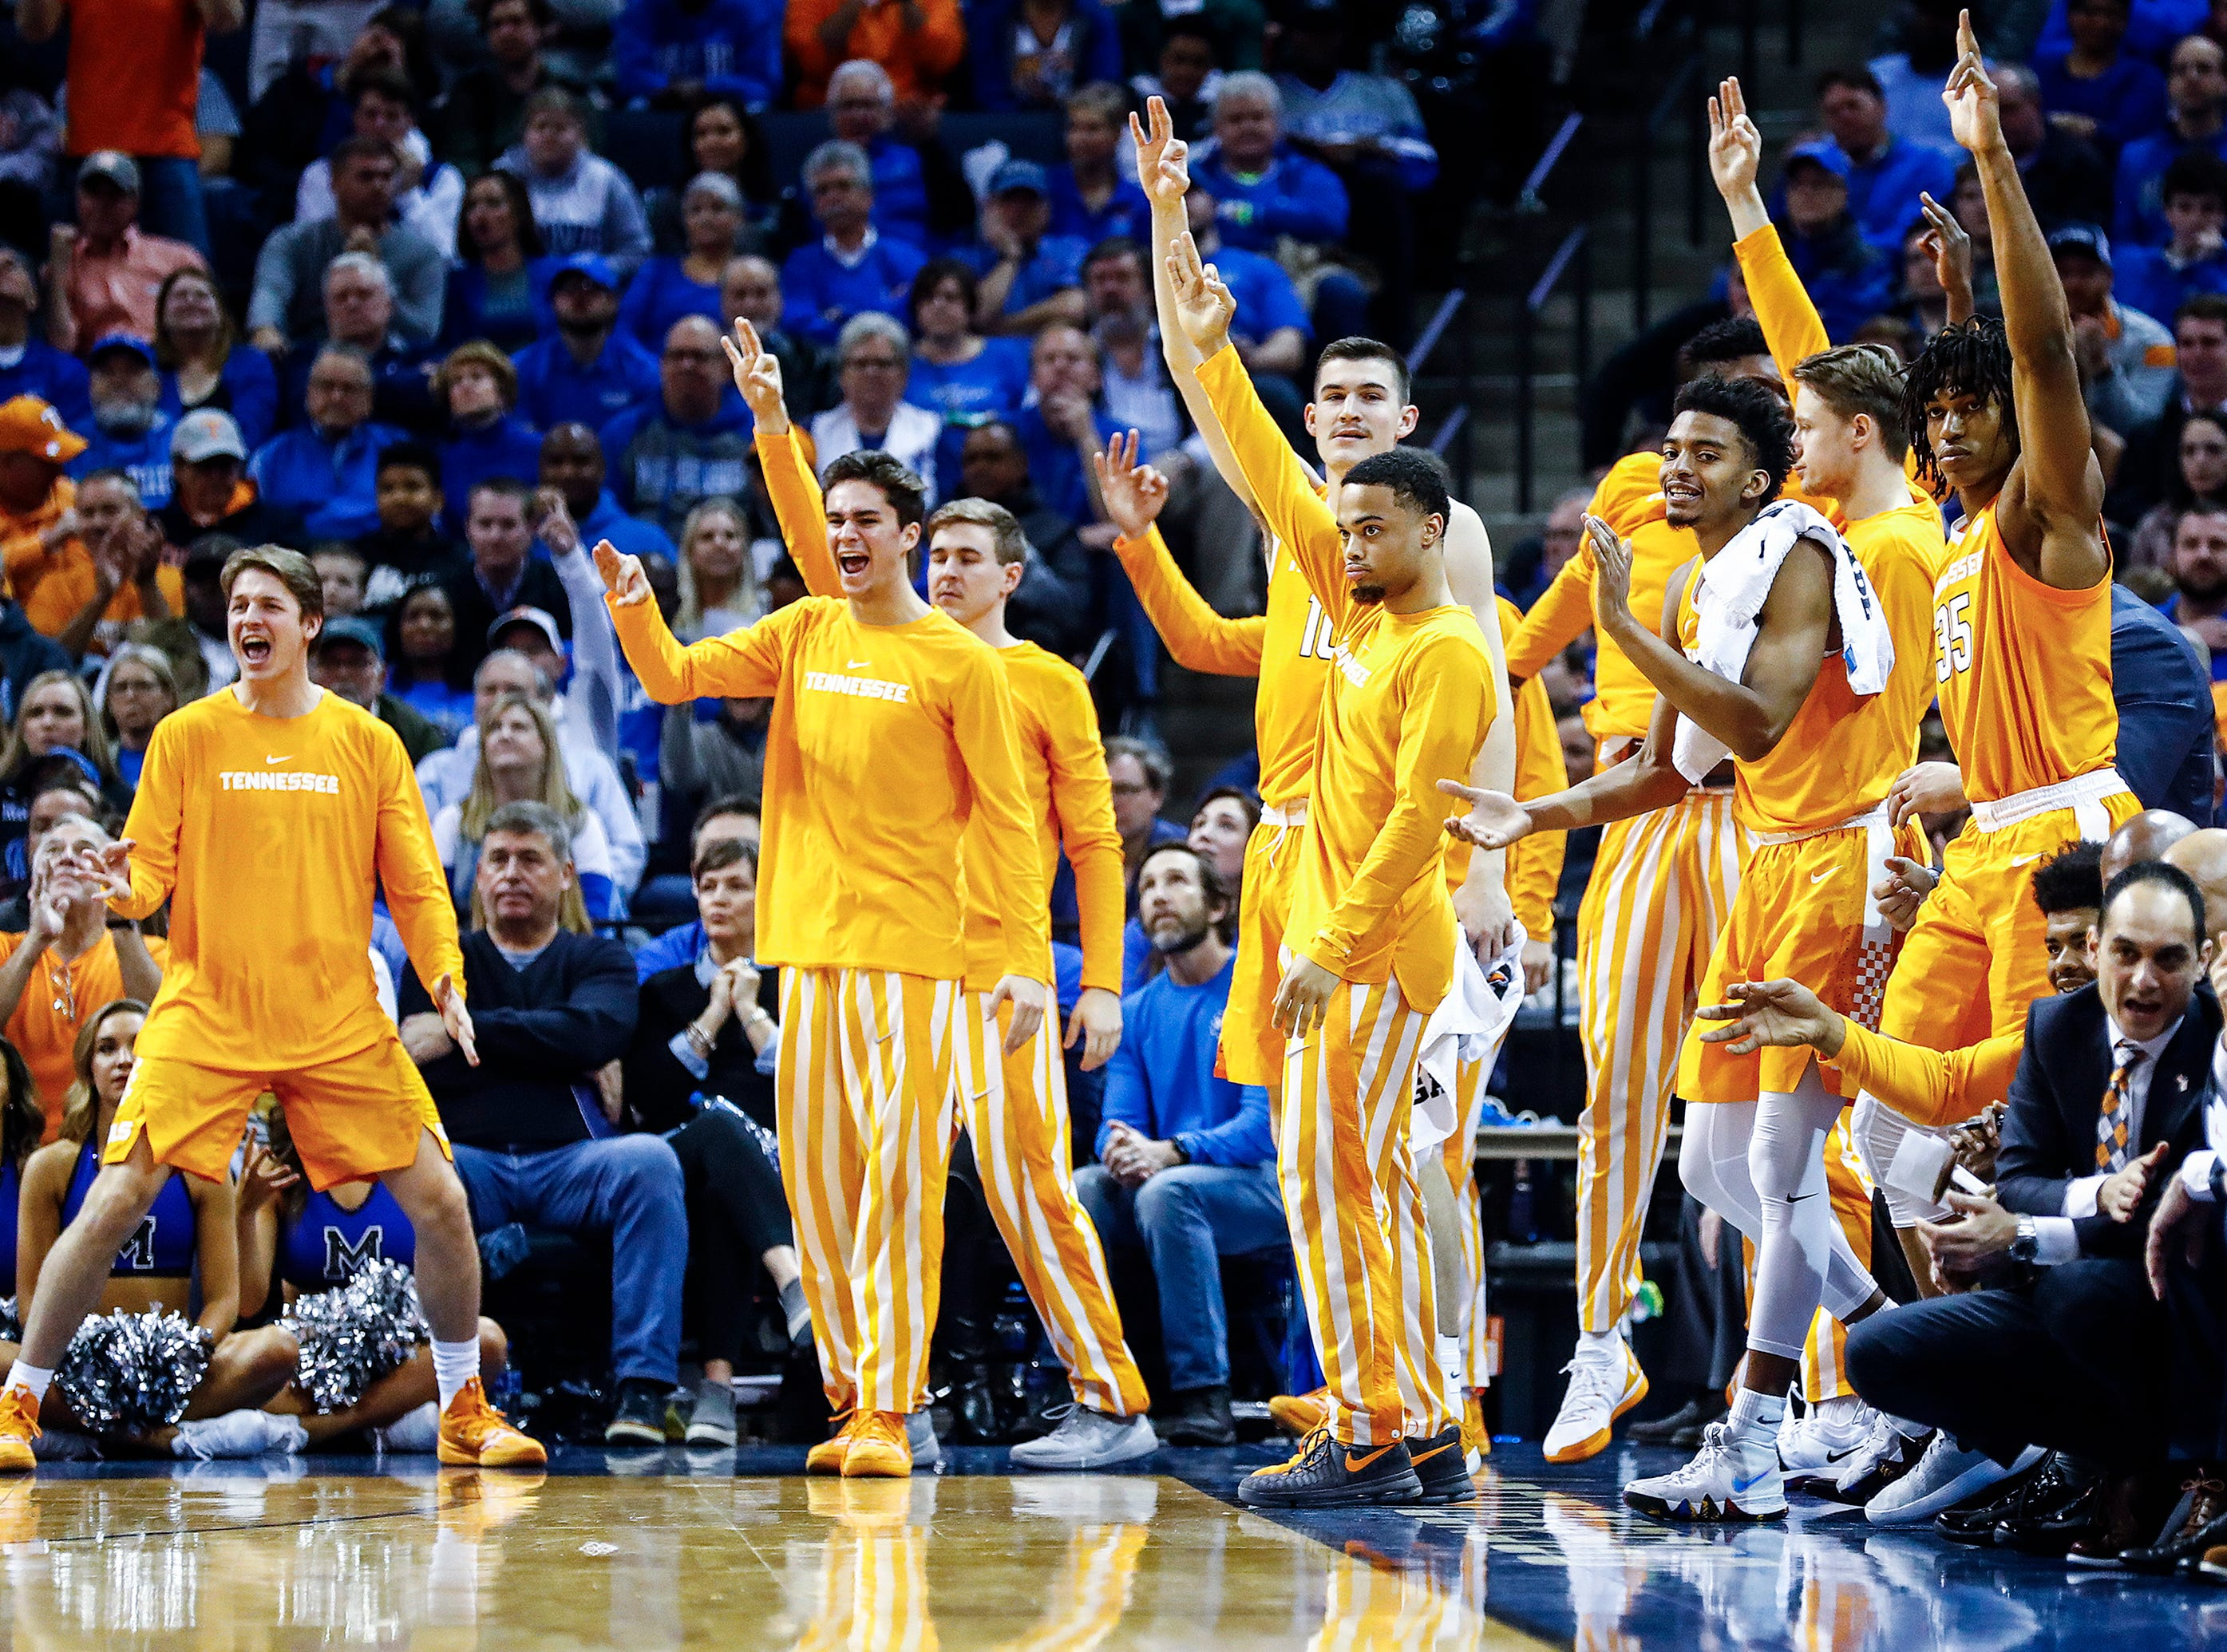 Tennessee bench celebrates a made 3-pointer against Memphis during action at the FedExForum, Saturday, December 15, 2018.